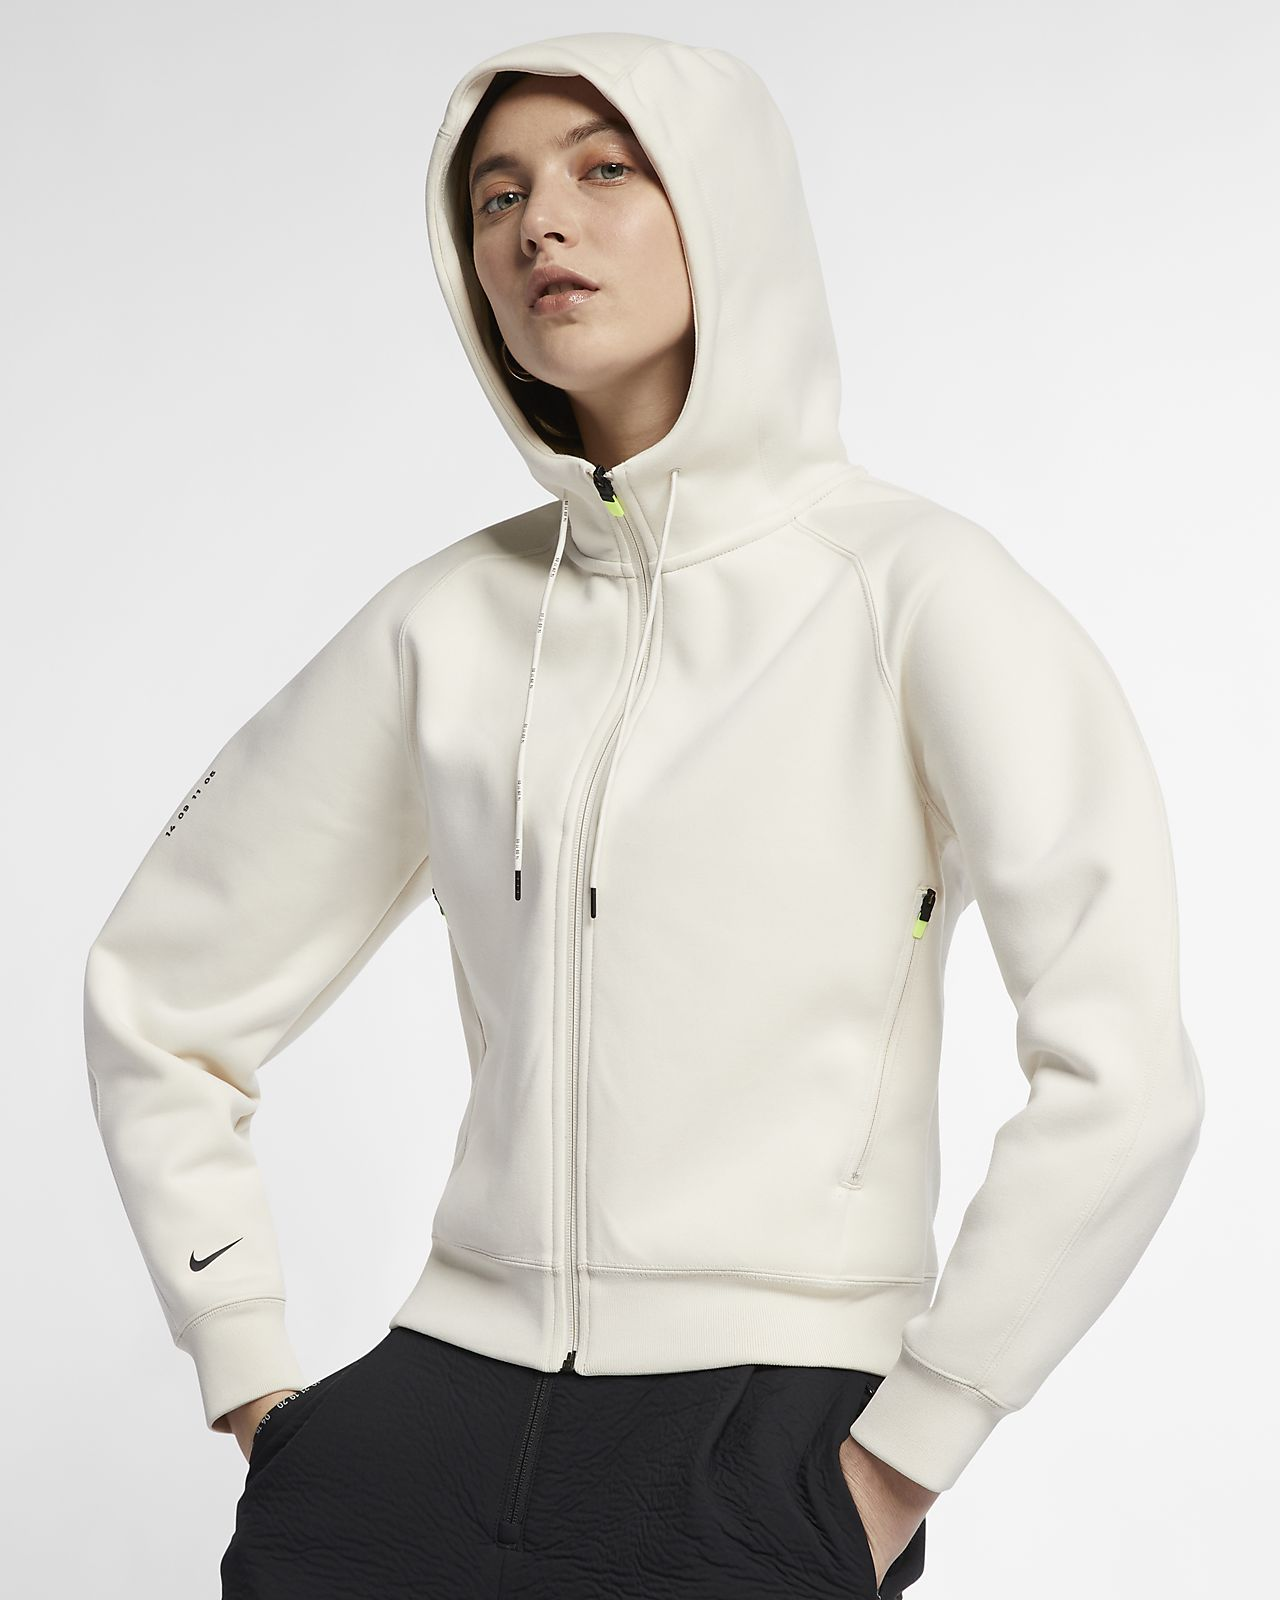 Nike Sportswear Tech Pack Women's Full-Zip Fleece Hoodie